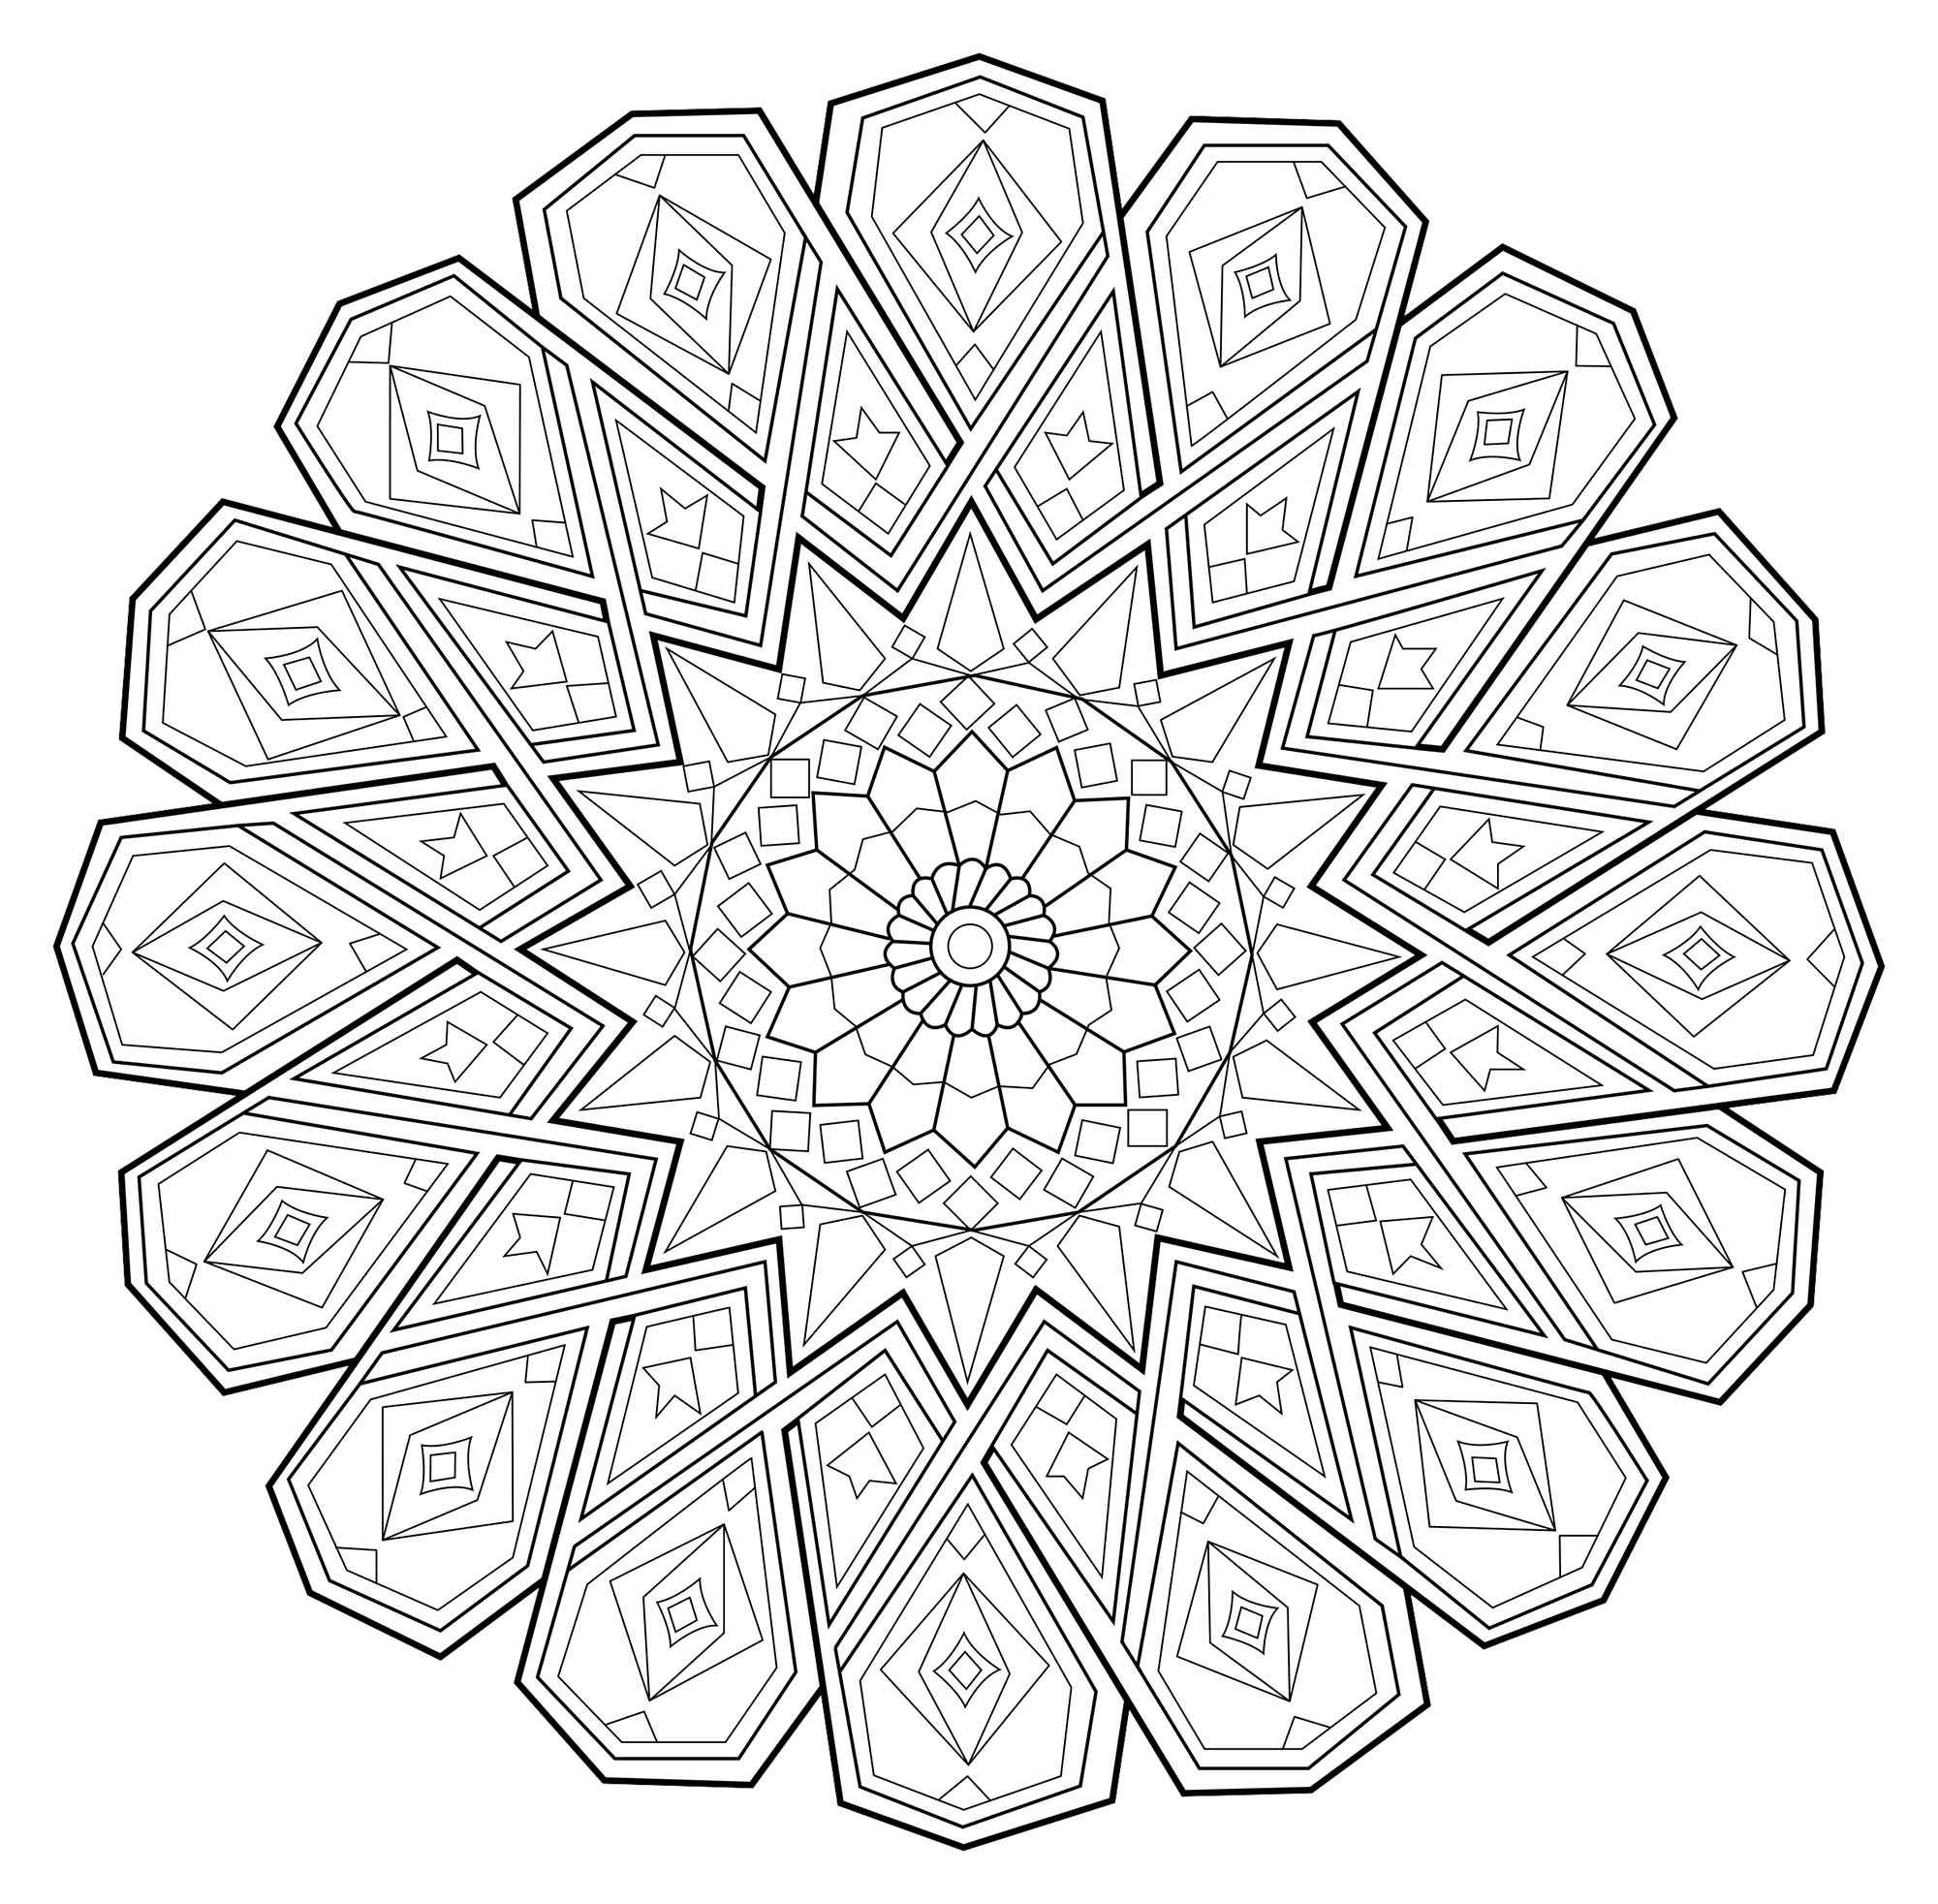 Fille Zen Mandala Zen Antistress 1 Mandalas Coloriages